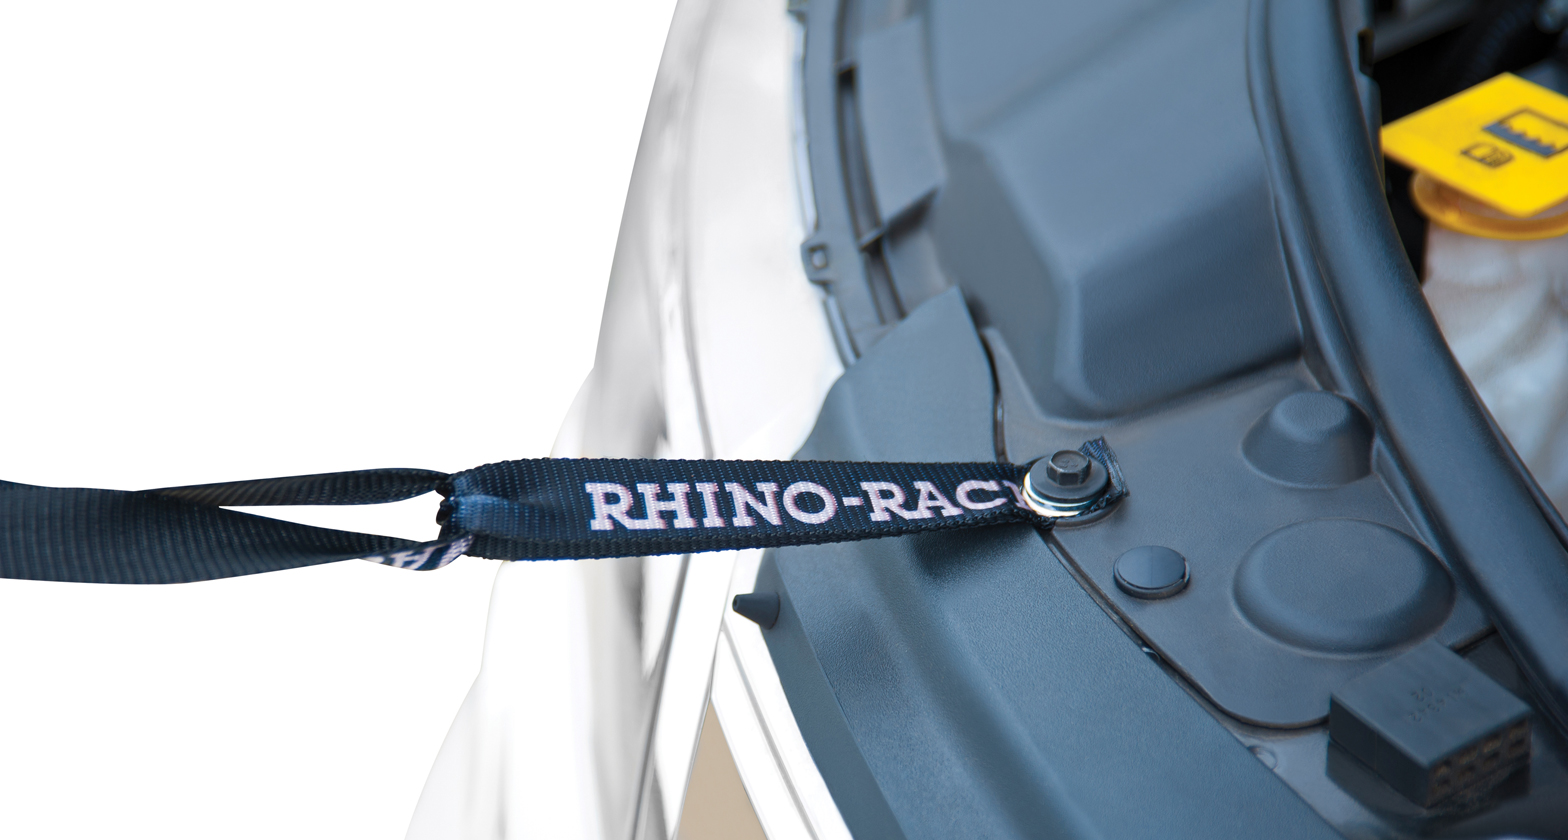 Rhino-Rack Anchor Strap